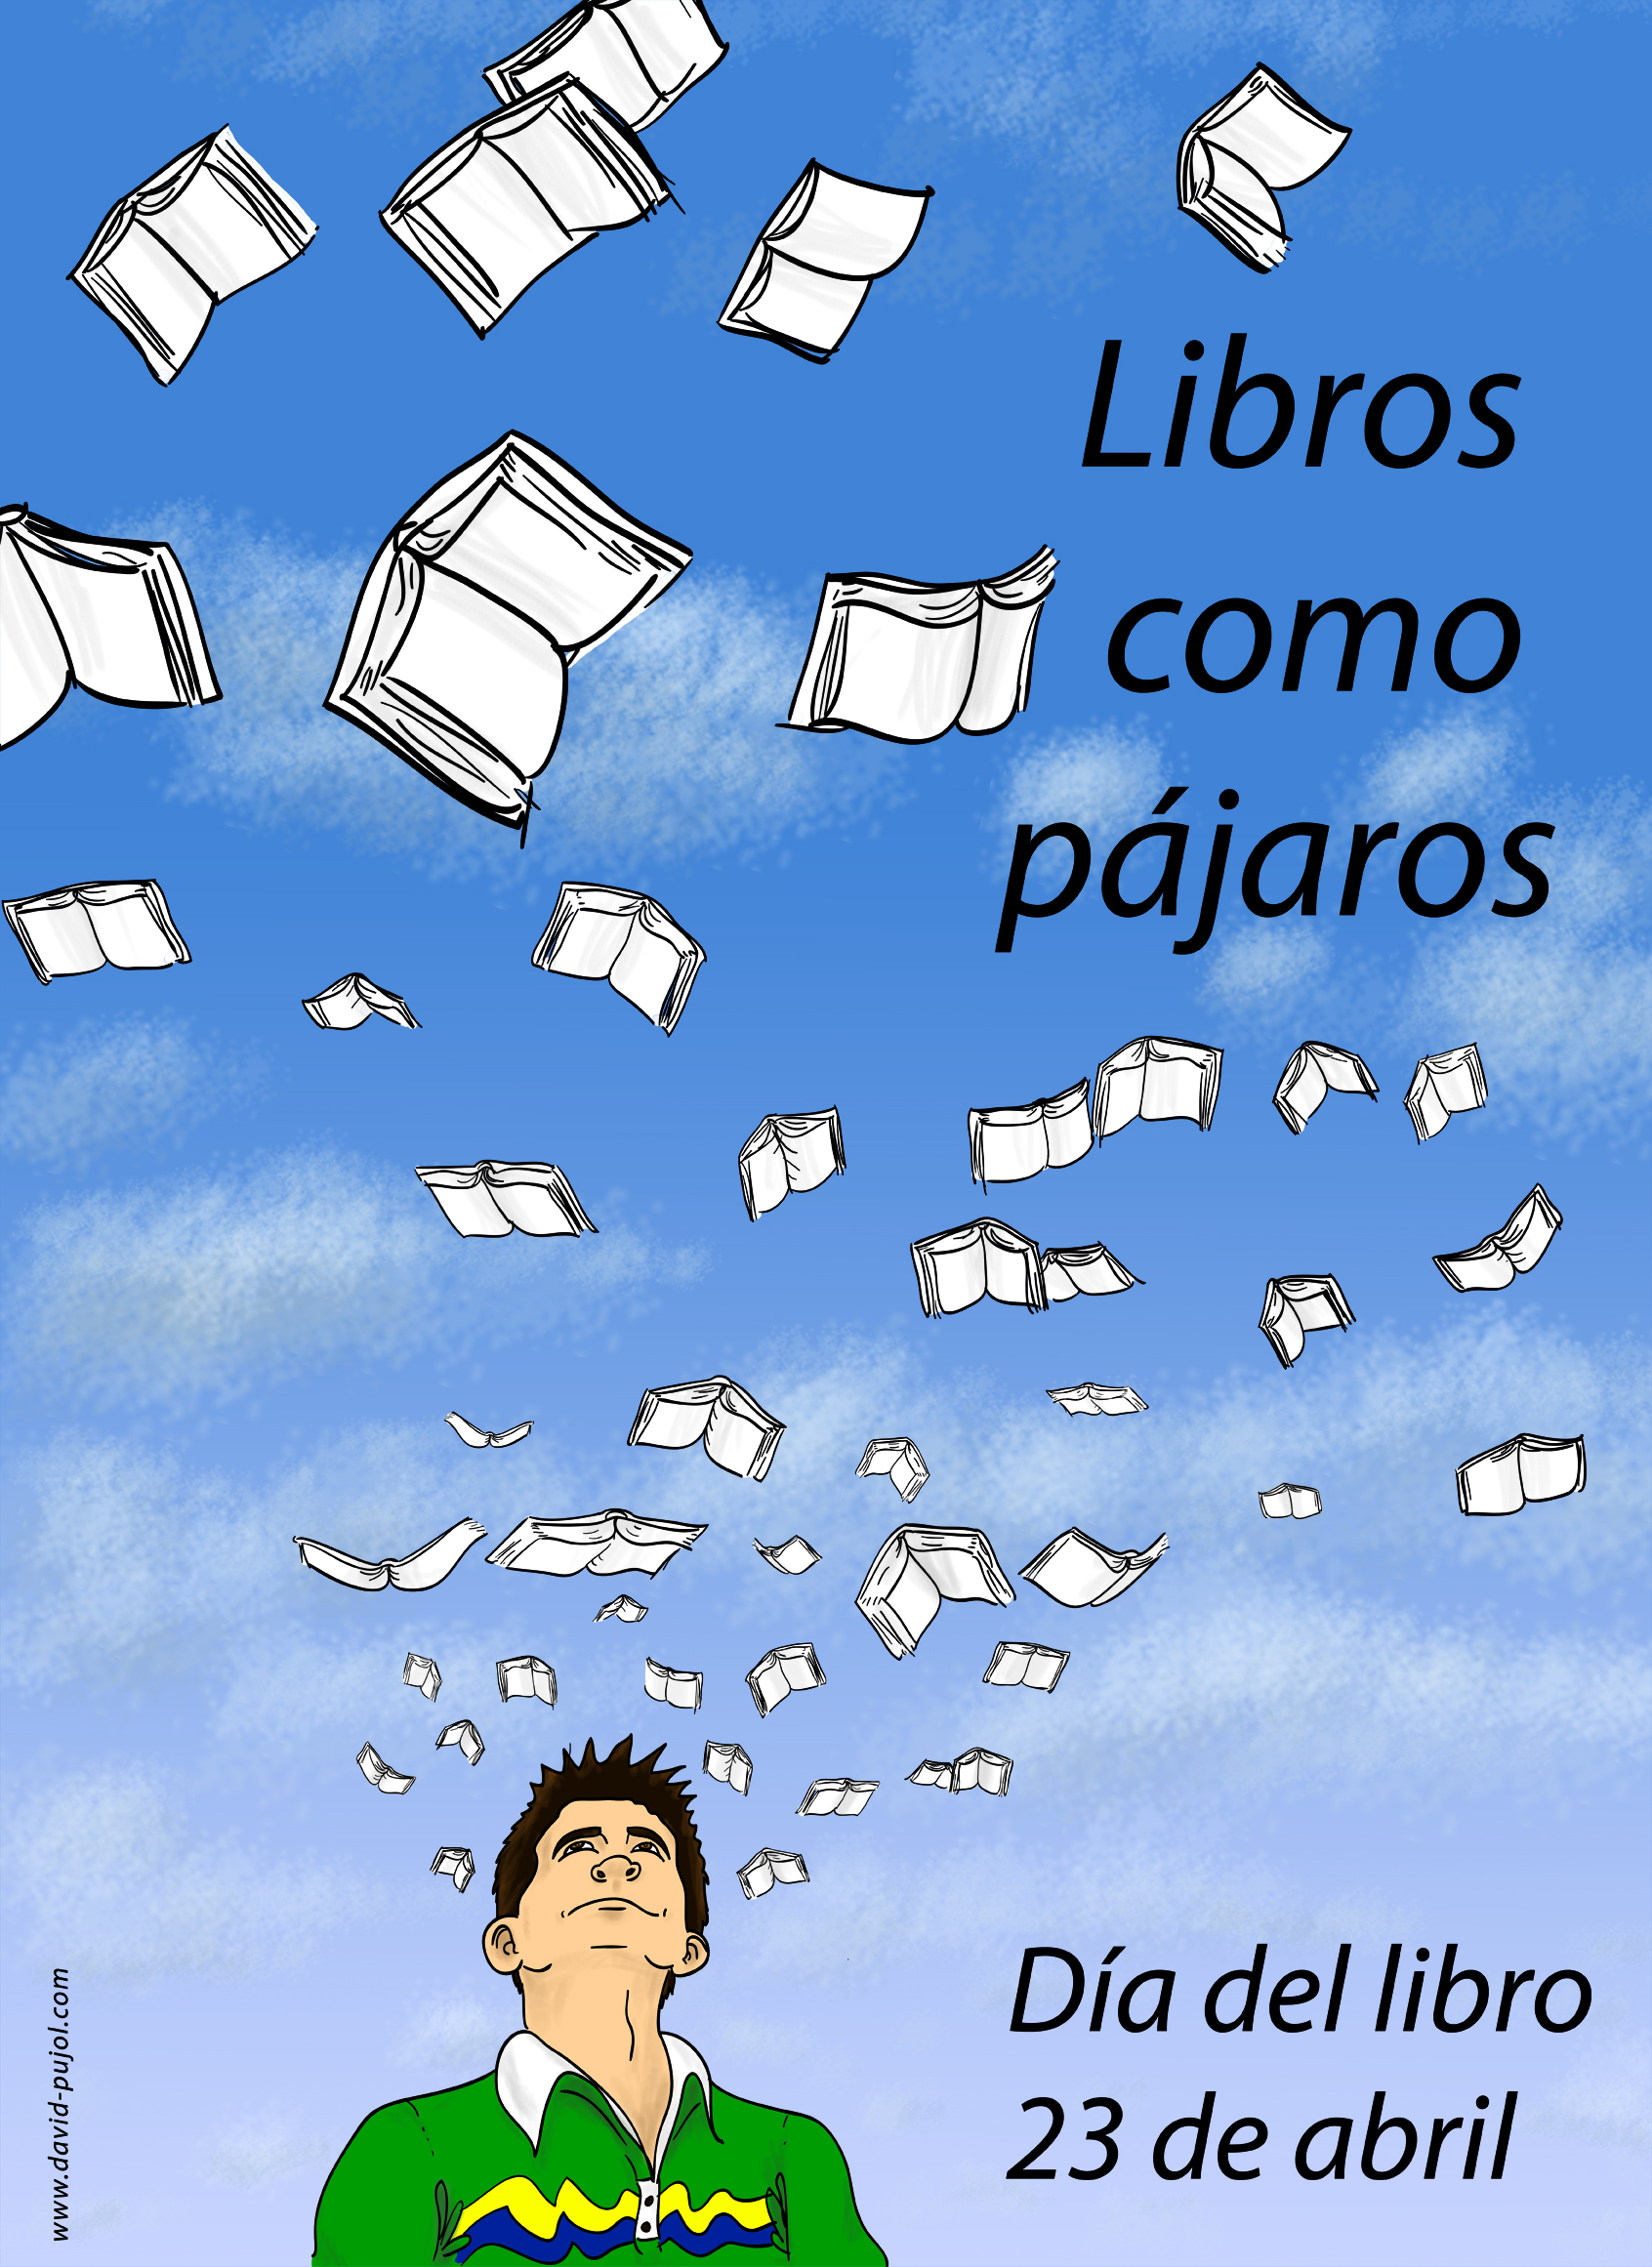 http://www.diadellibro.eu/images/stories/noticias/carteles_afiches_dia_del_libro_eu_2014_David_Pujol.jpg